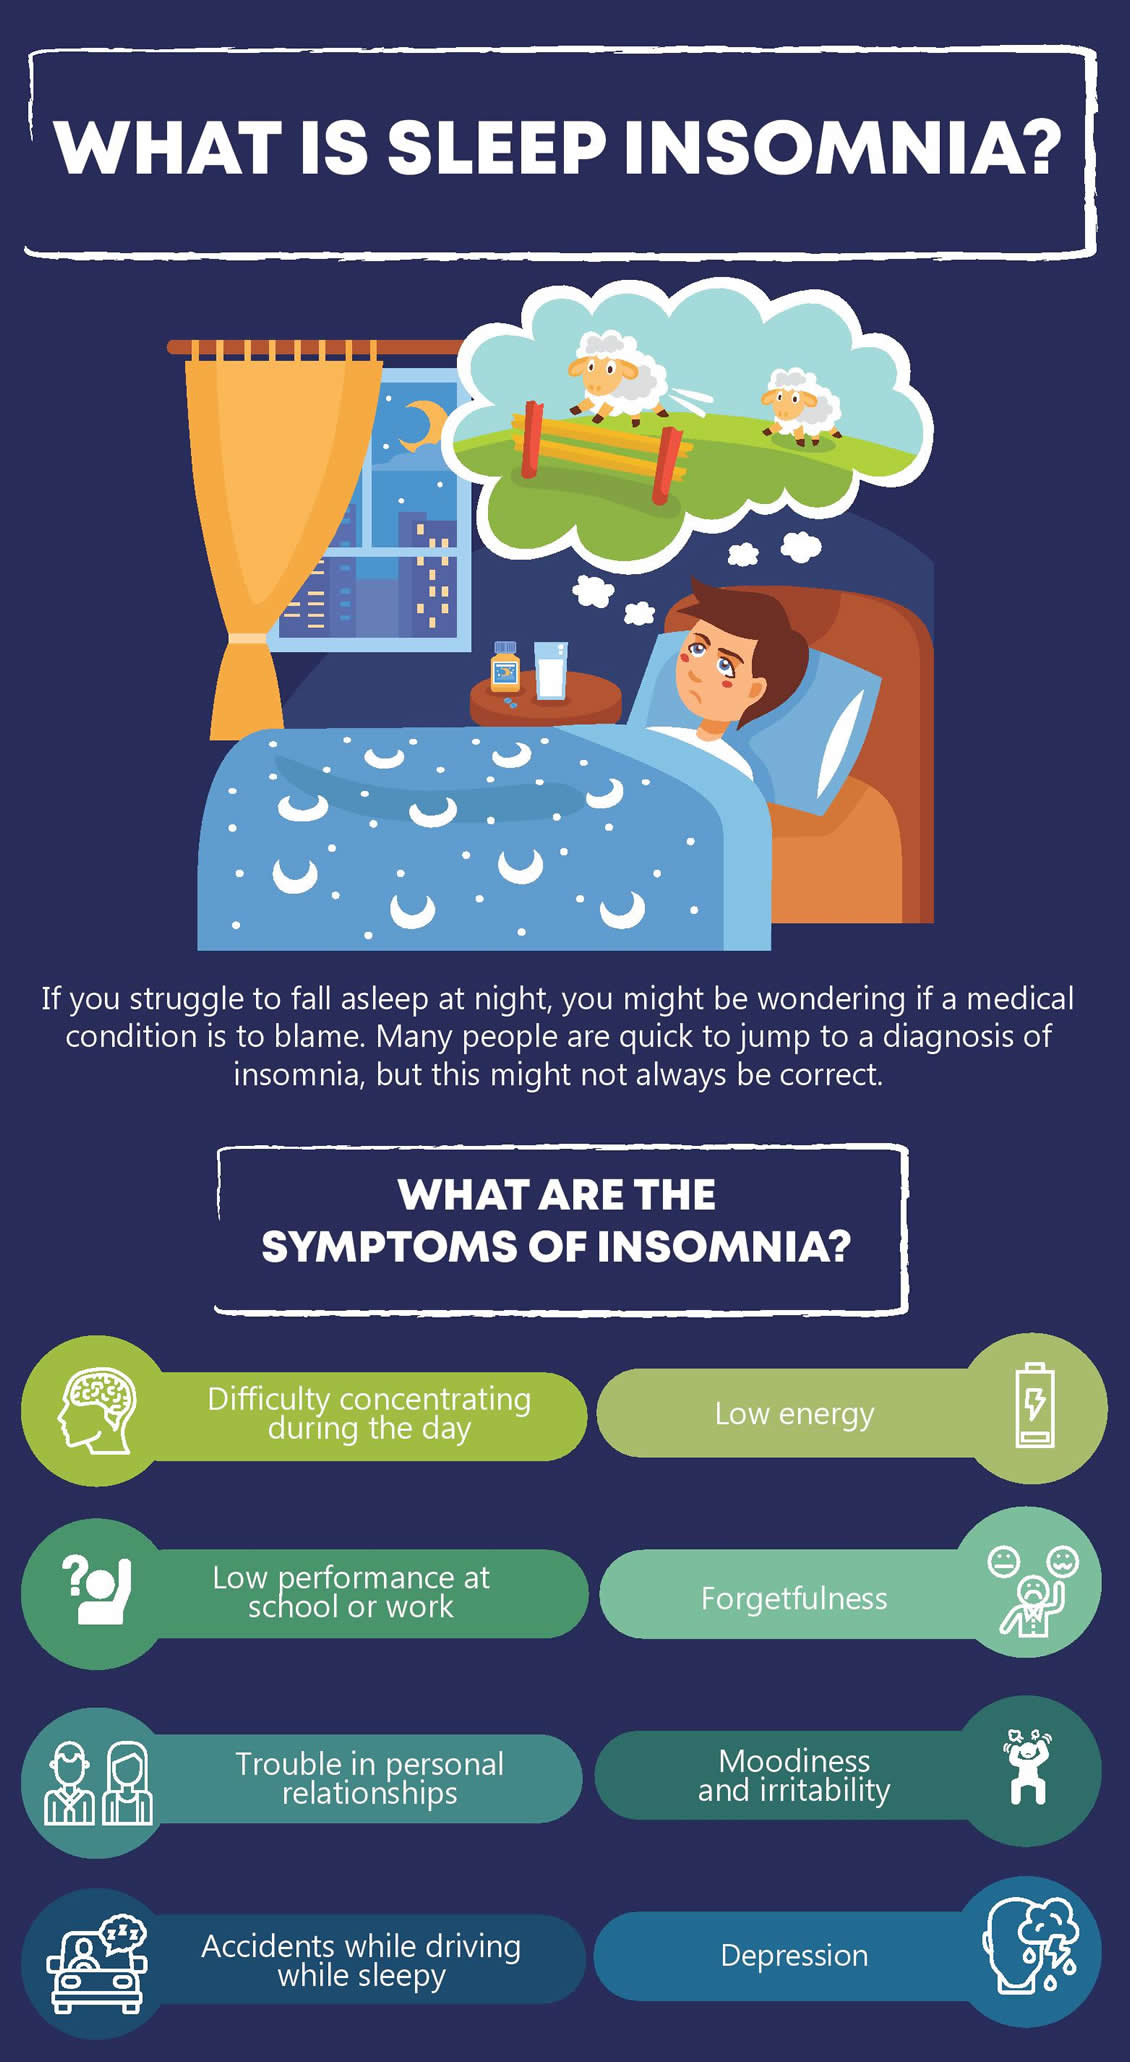 What is sleep insomnia?